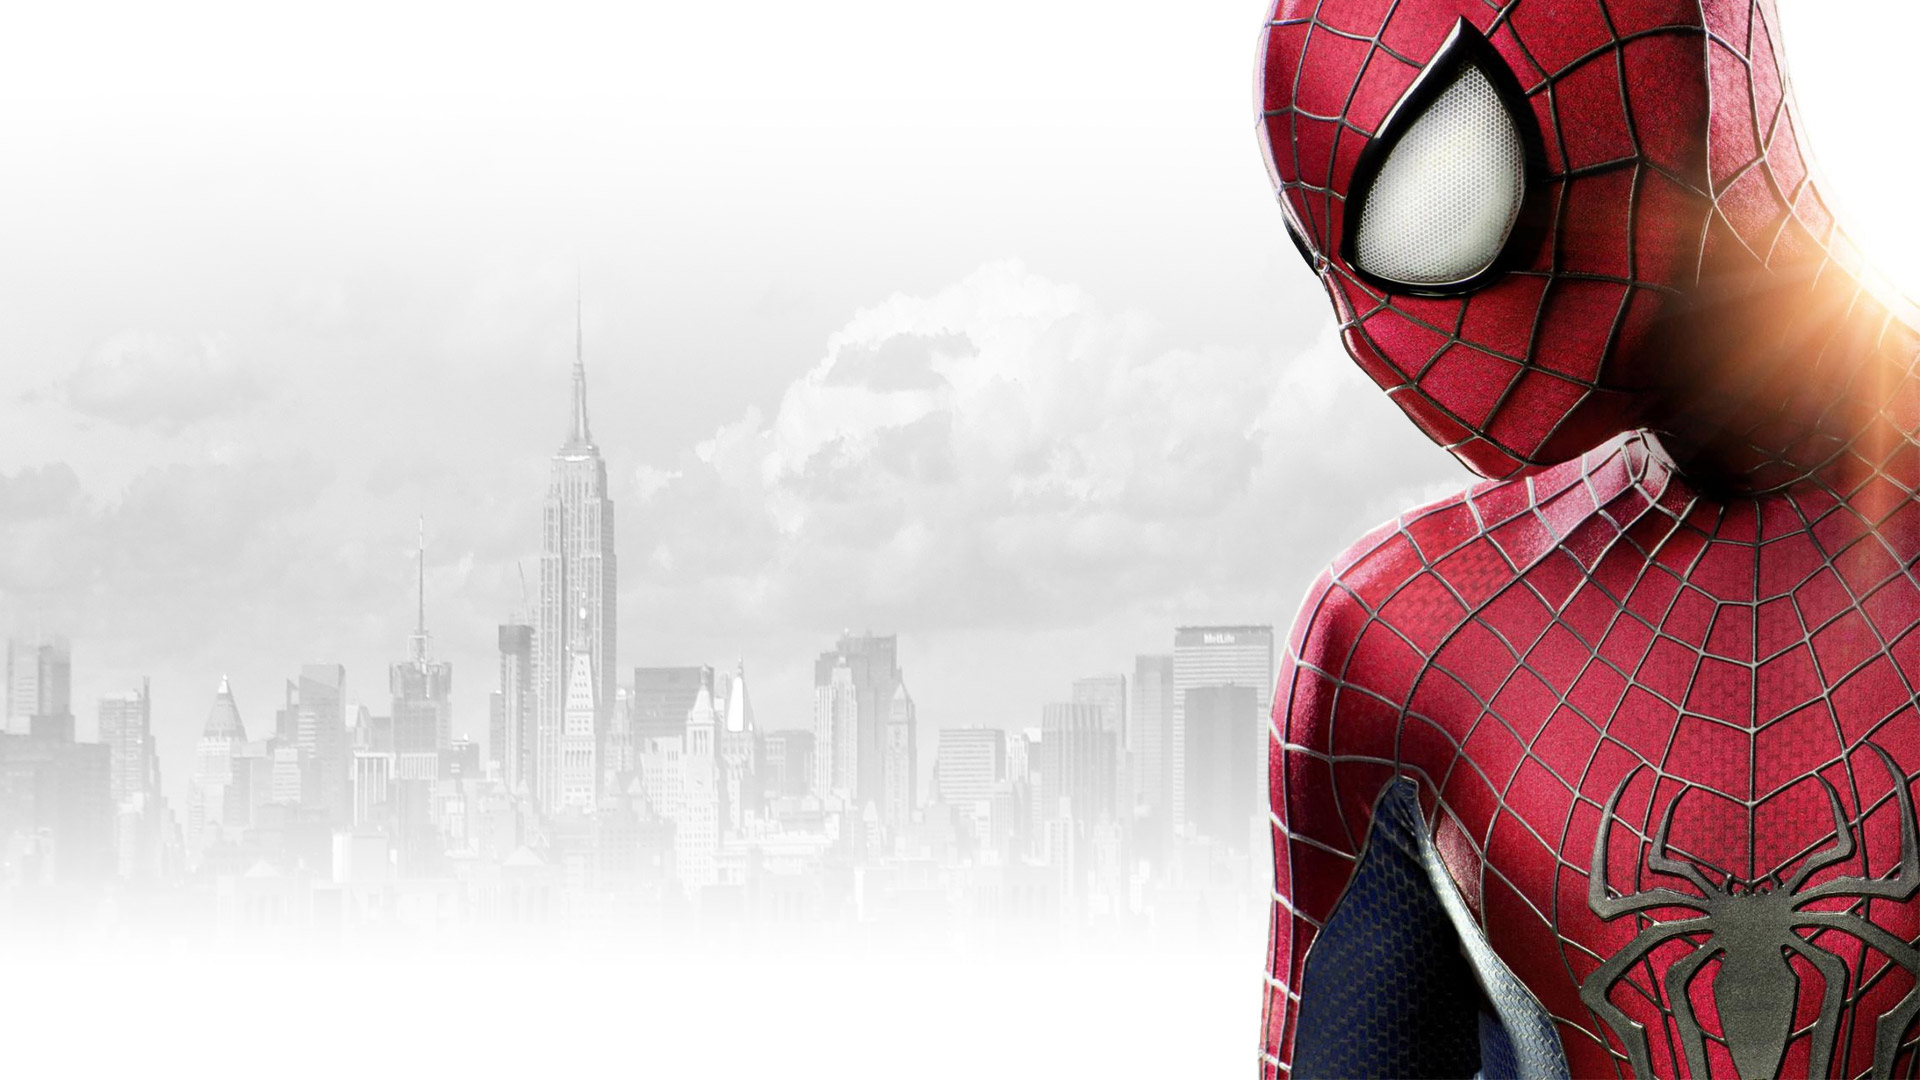 Free The Amazing Spider-Man Wallpaper in 1920x1080